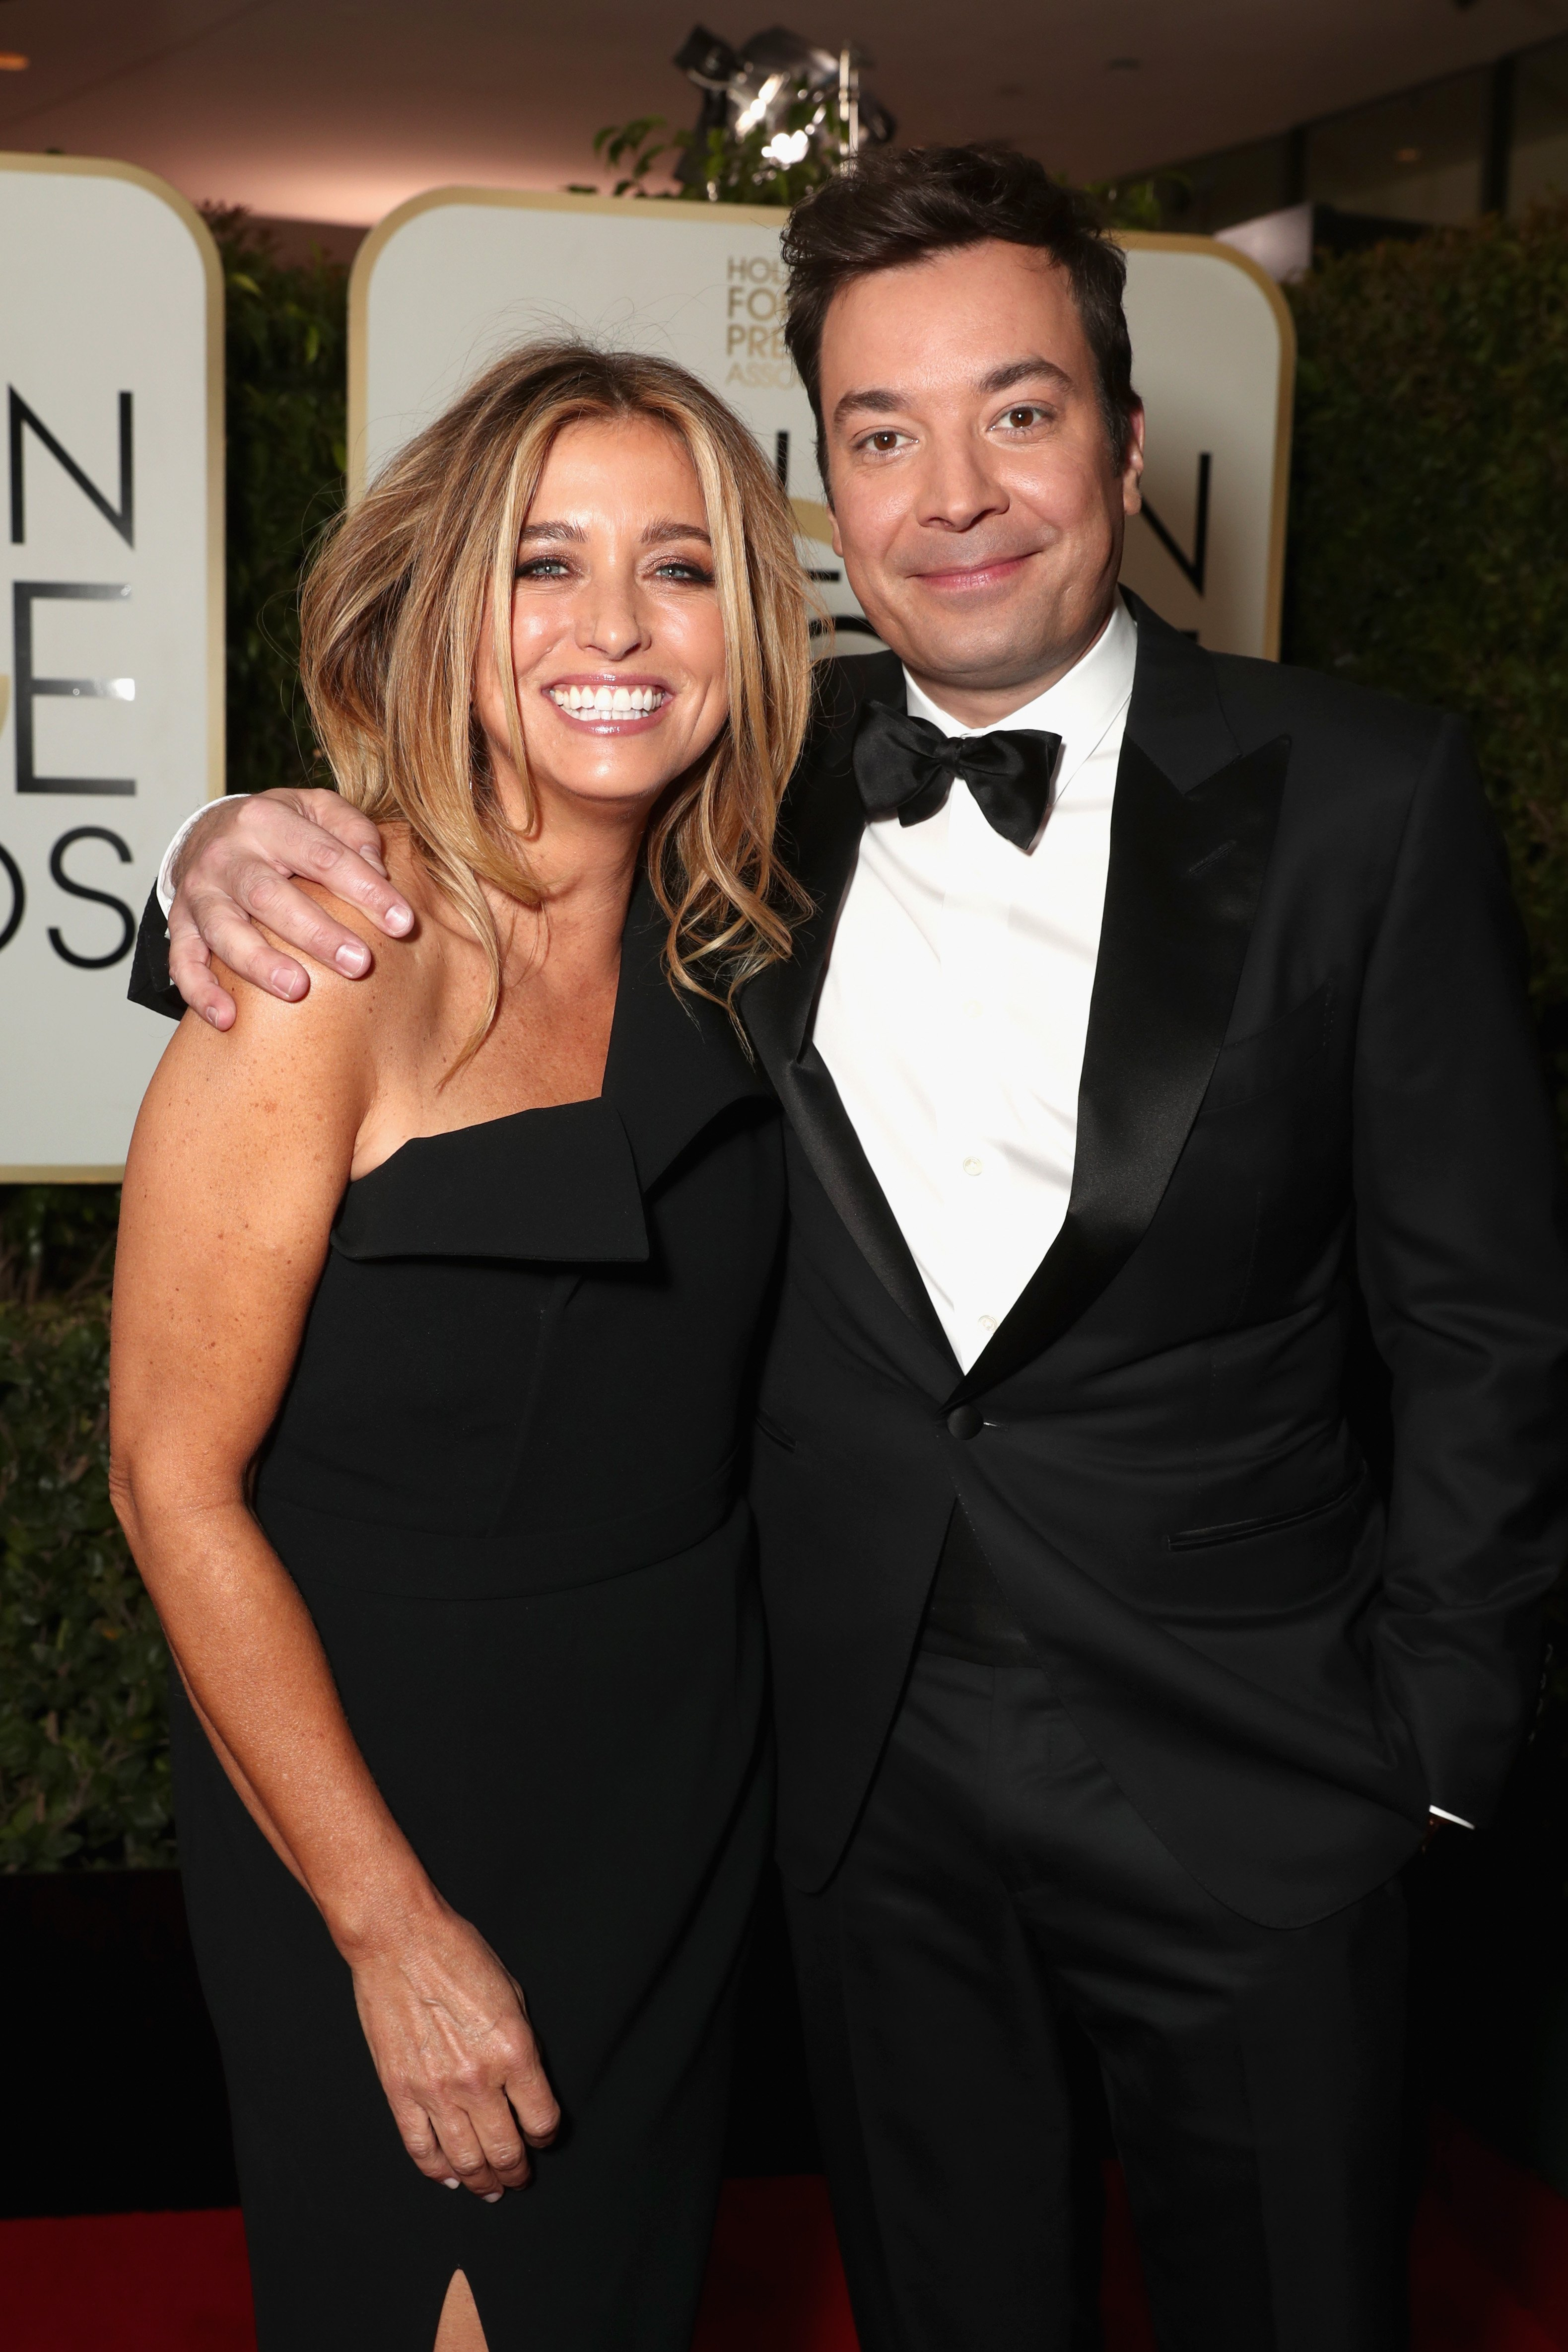 Nancy Juvonen and host Jimmy Fallon attends the 74th Annual Golden Globe Awards at The Beverly Hilton Hotel on January 8, 2017 in Beverly Hills, California. | Photo: GettyImages